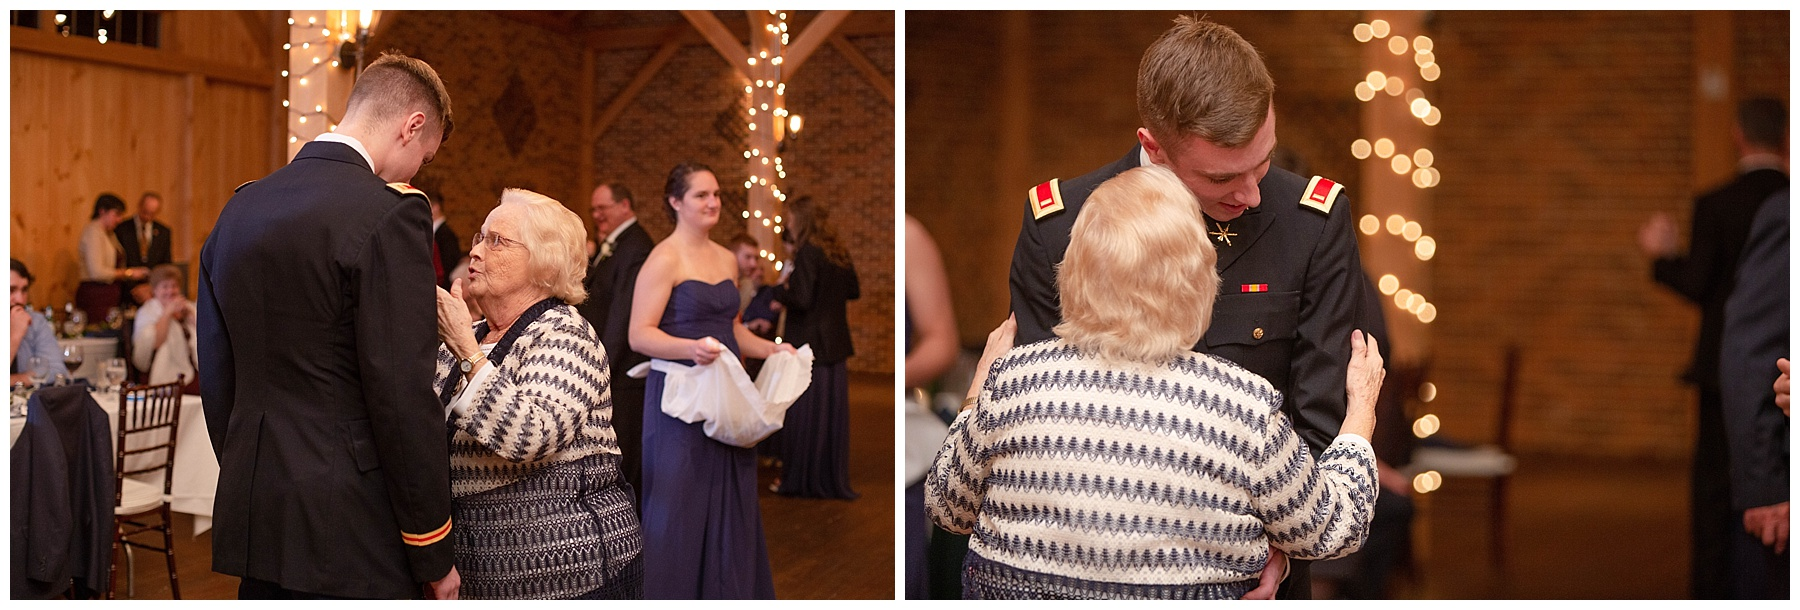 I REALLY want to know what advice Nicole's grandma is giving Johnny in these photos!